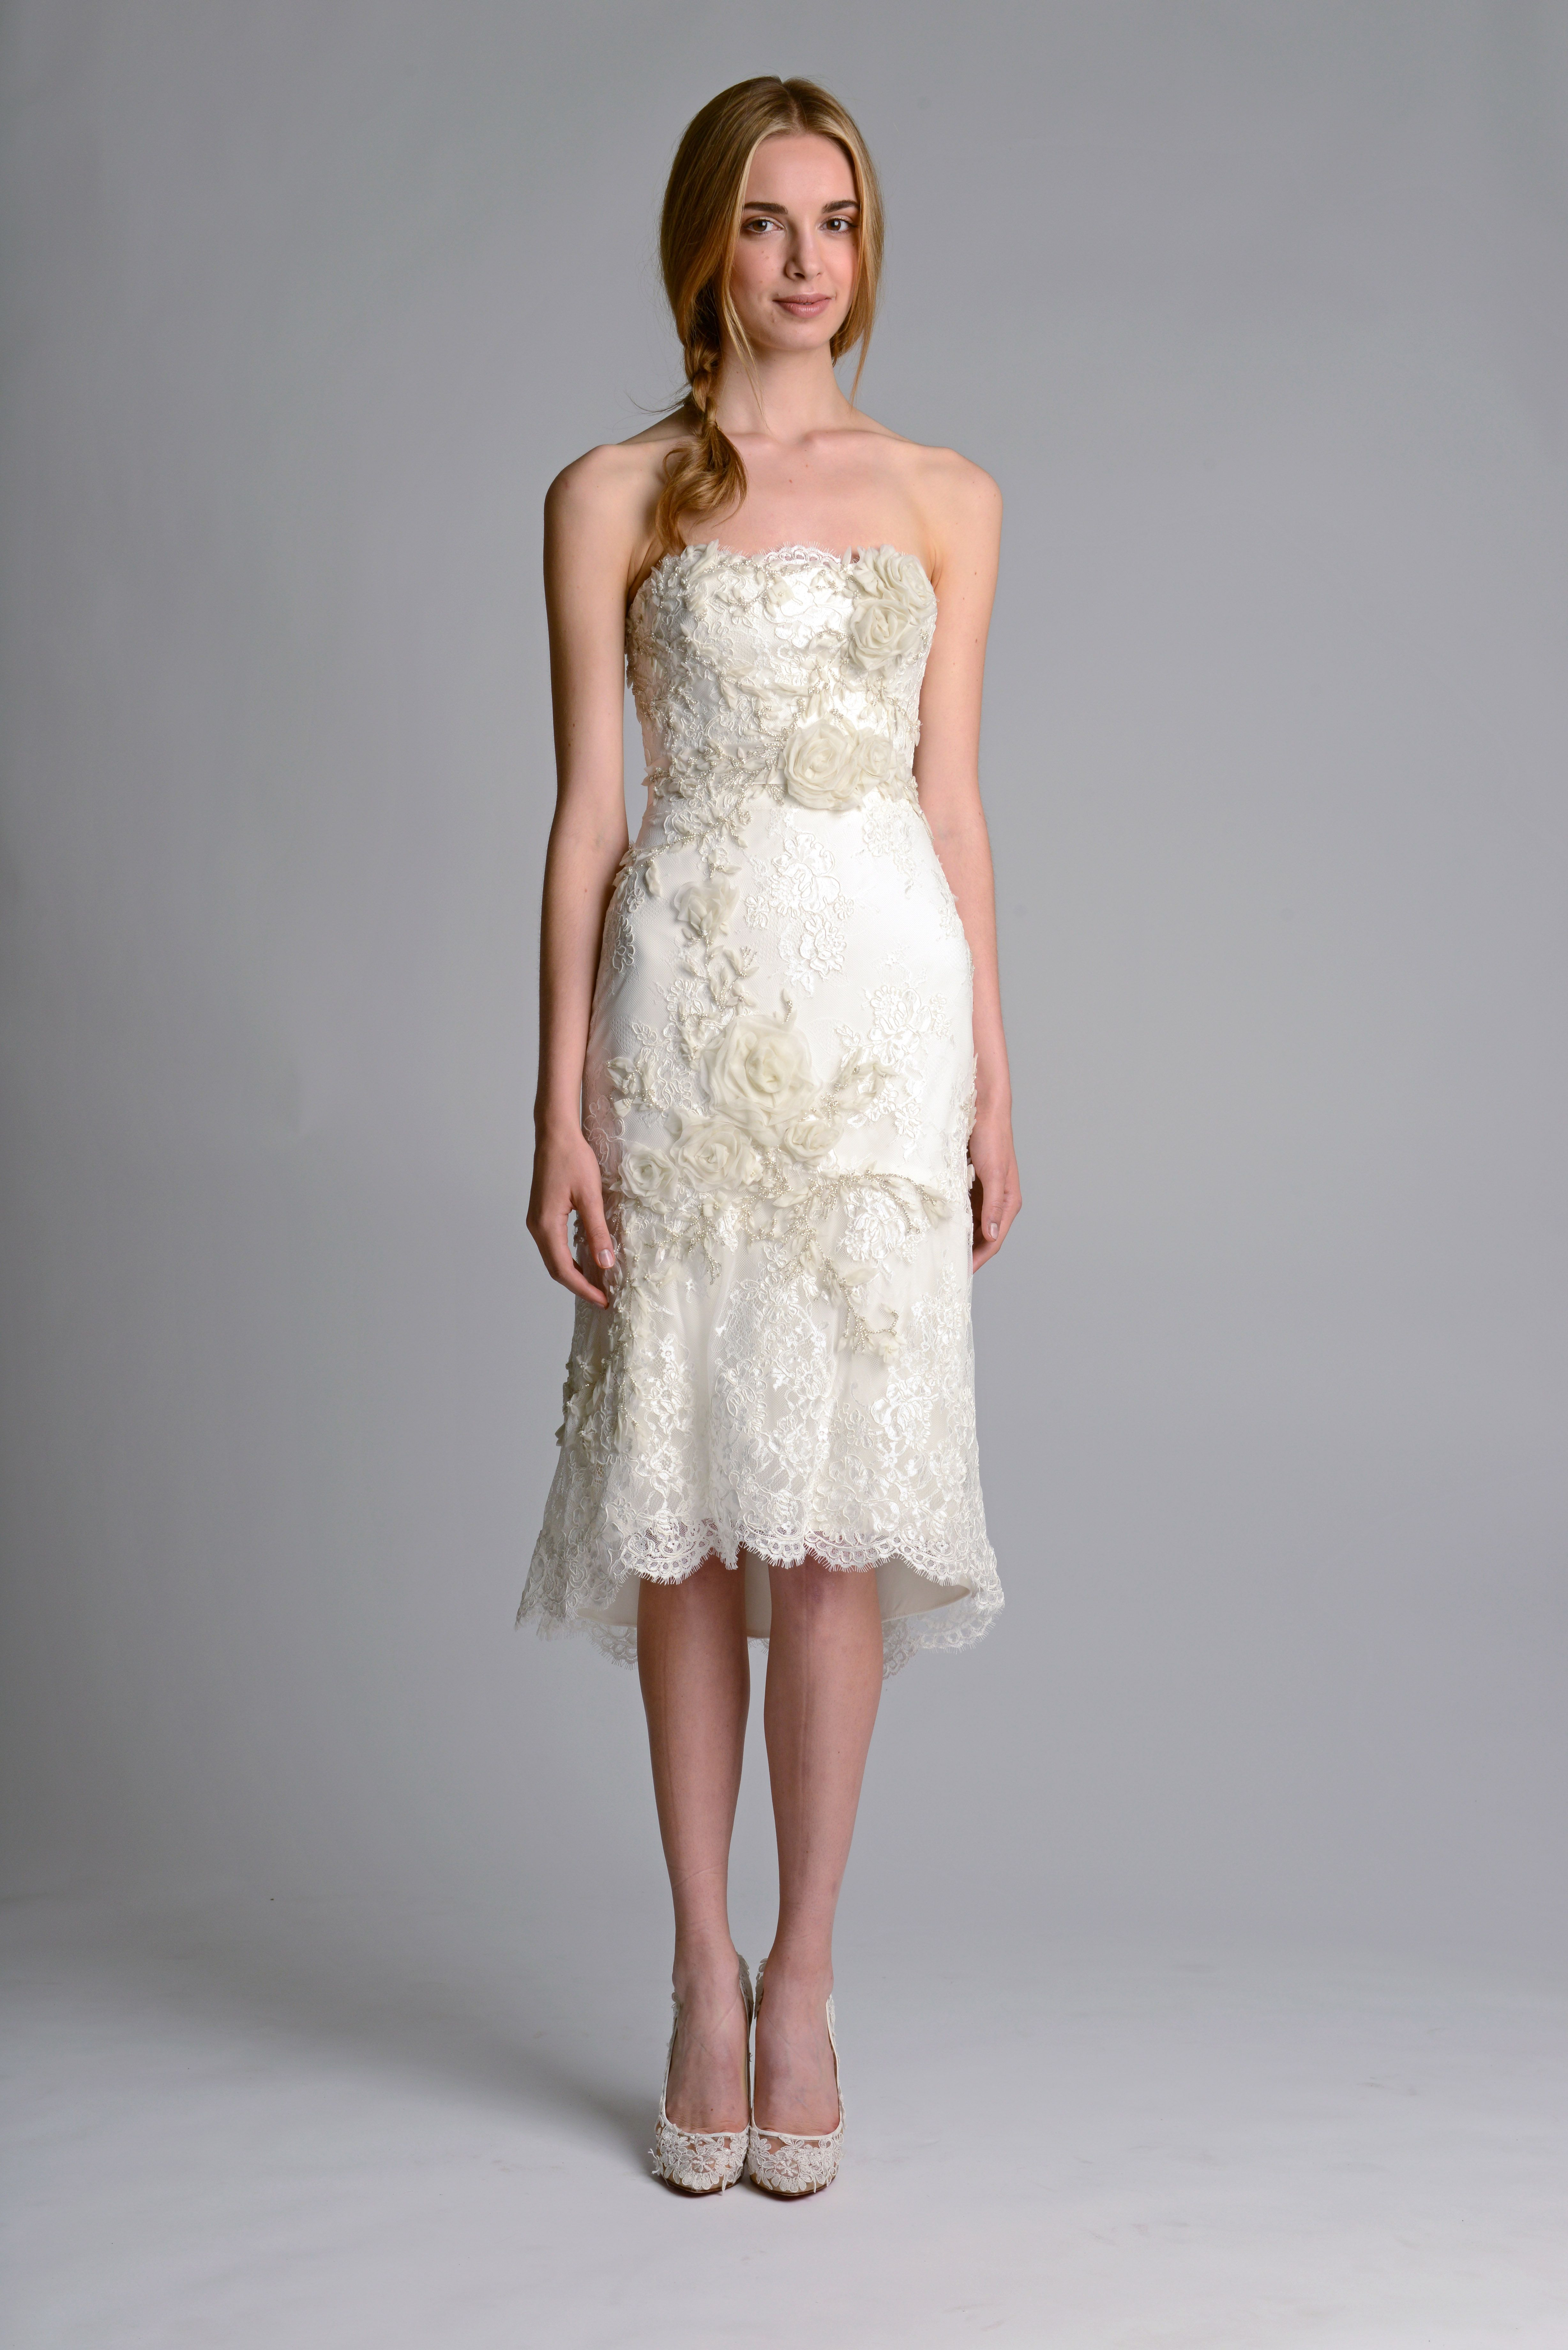 Short story short story marchesa bridal fall 2014 great for a change into dress or junglespirit Image collections